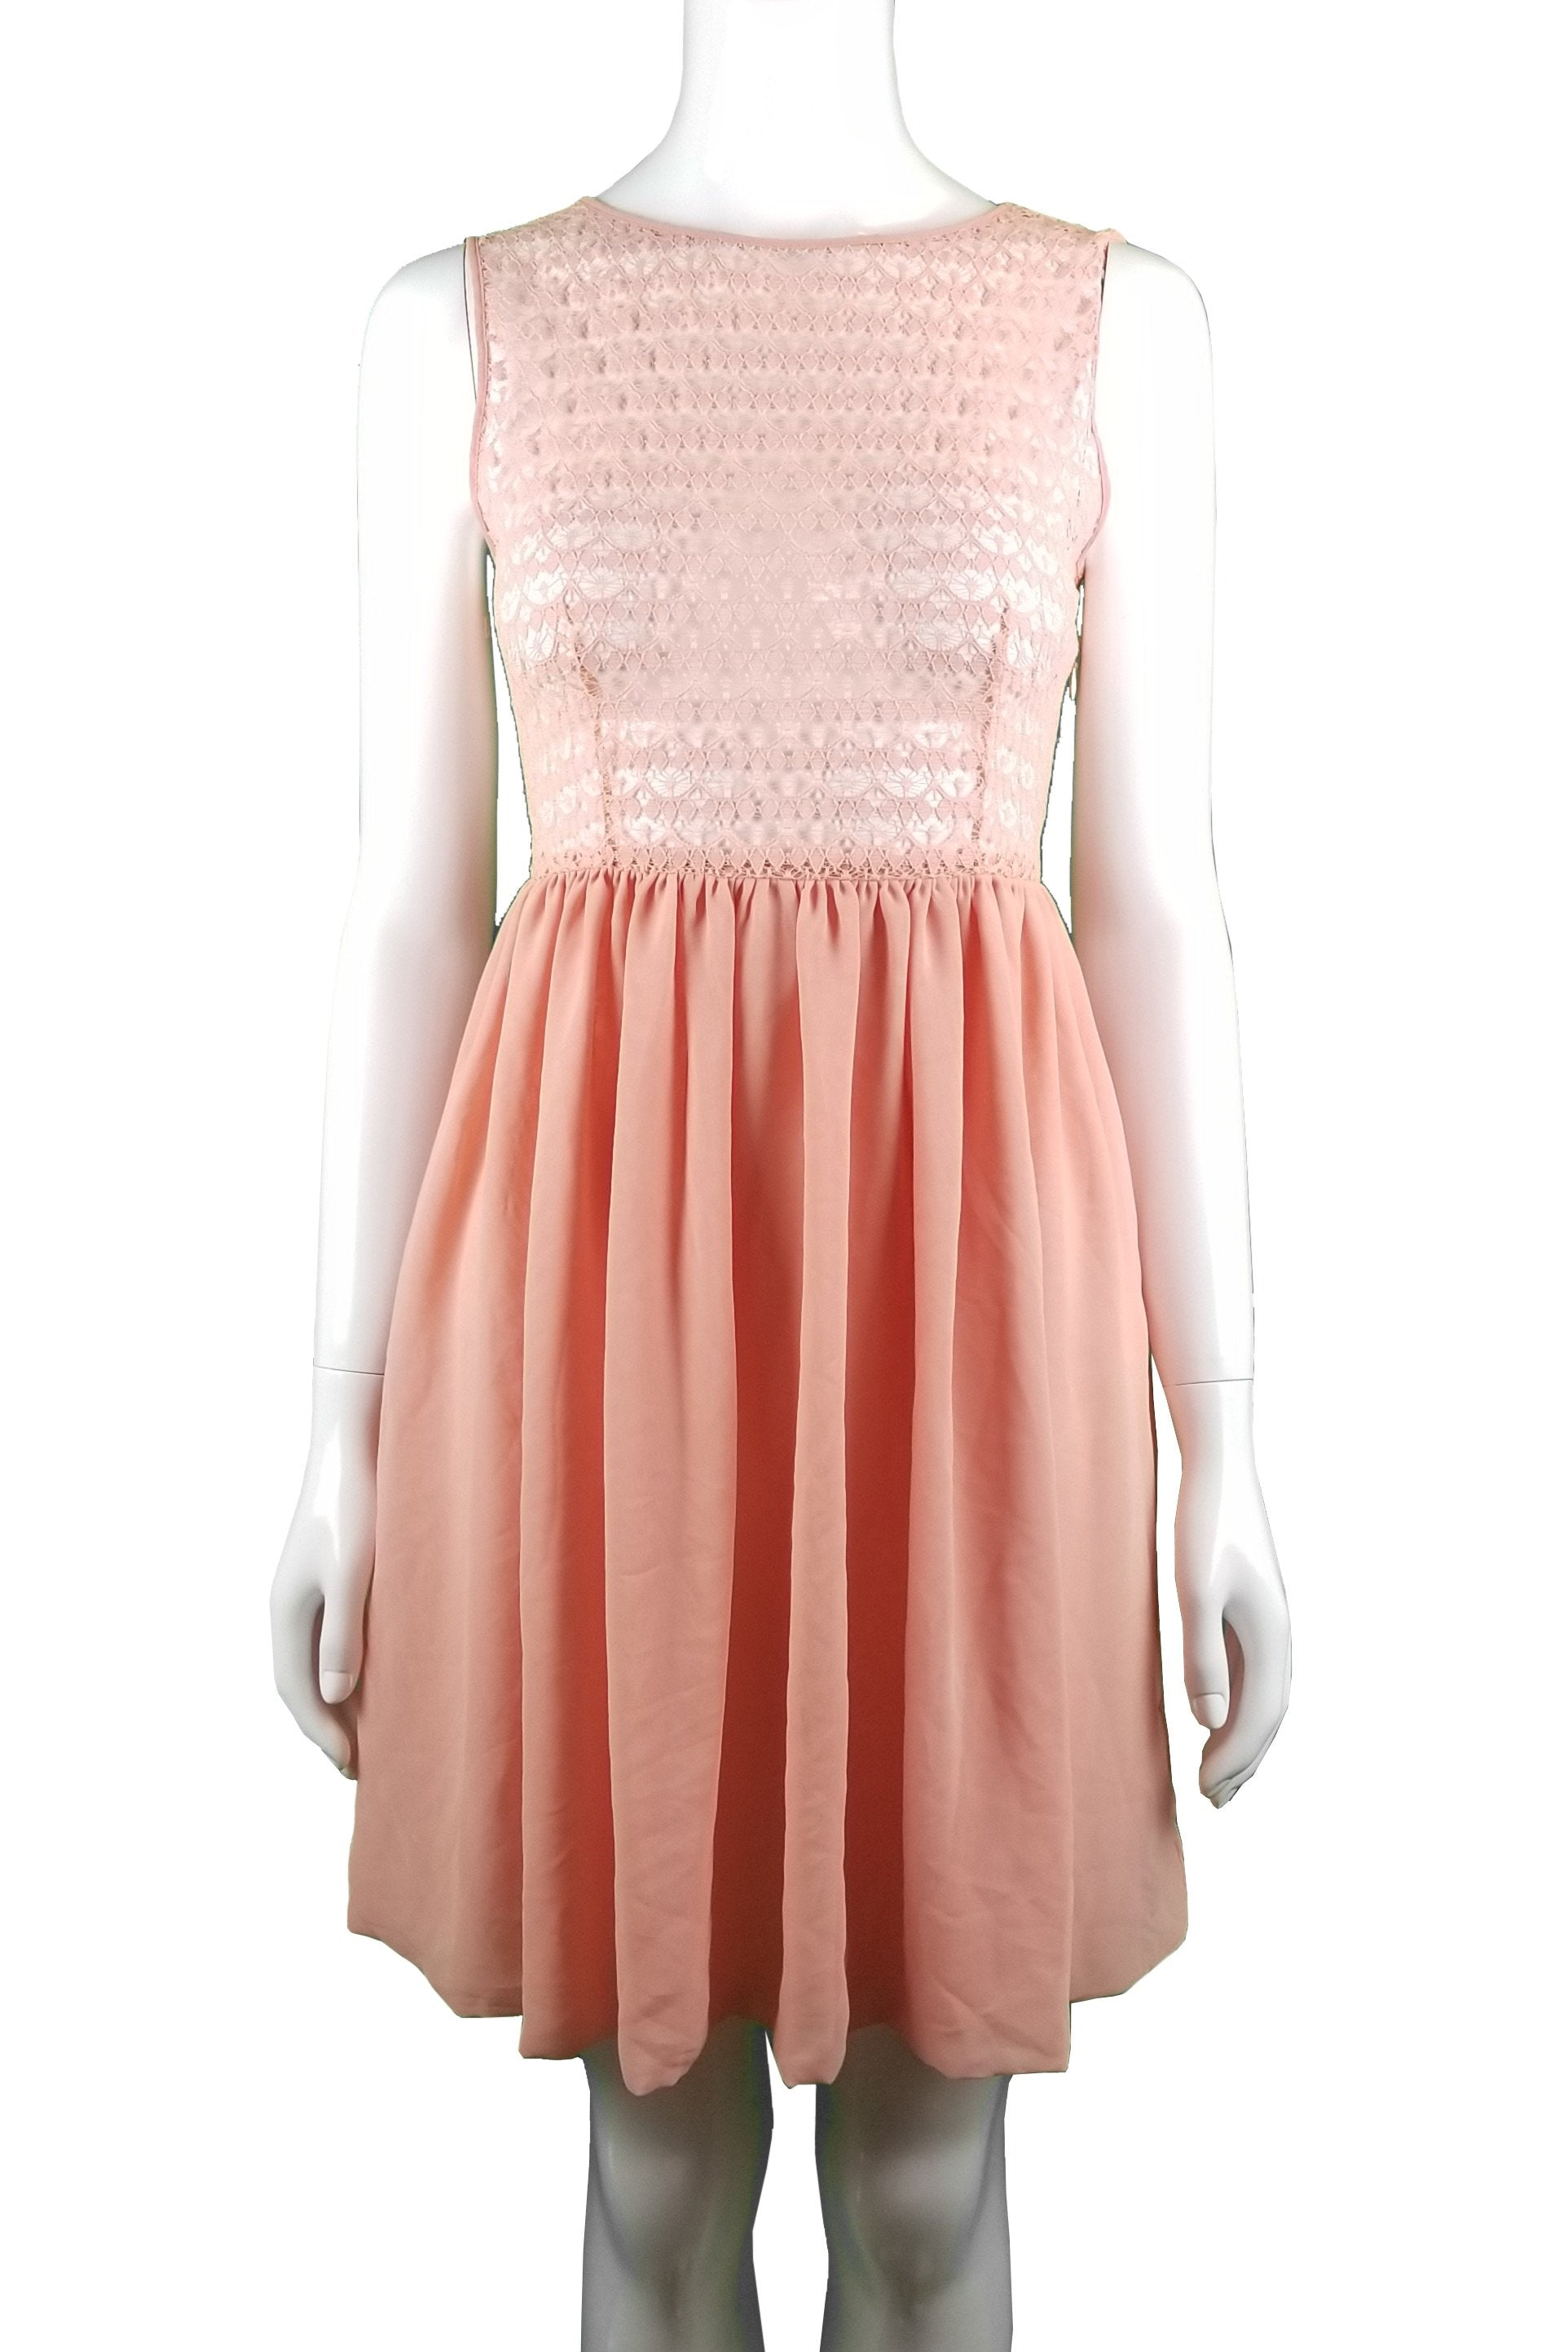 American Apparel Pink Lace Top Fit and Flare Midi Dress, This decidedly feminine dress is perfect for a hot summer picnic date or casual hangouts with your lovely friends. , Pink, 100% Polyester, women's Dresses & Rompers, women's Pink Dresses & Rompers, American Apparel women's Dresses & Rompers, Cute lace dress, spring fit and flare lace dress, summer dress, fit and flare dress with lace top